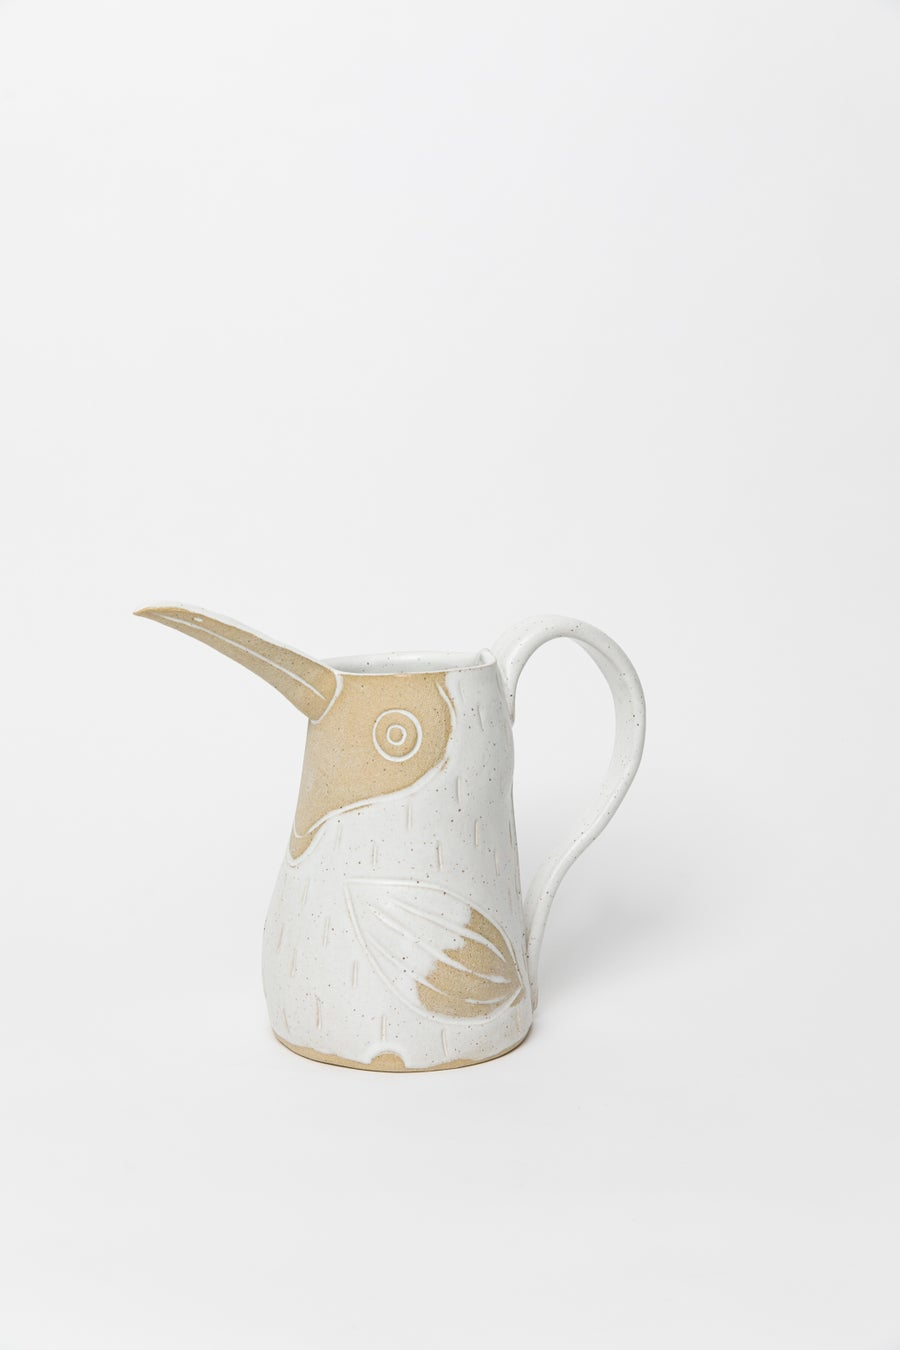 Image of Large Family size Matte White Speckled Toucan Pitcher